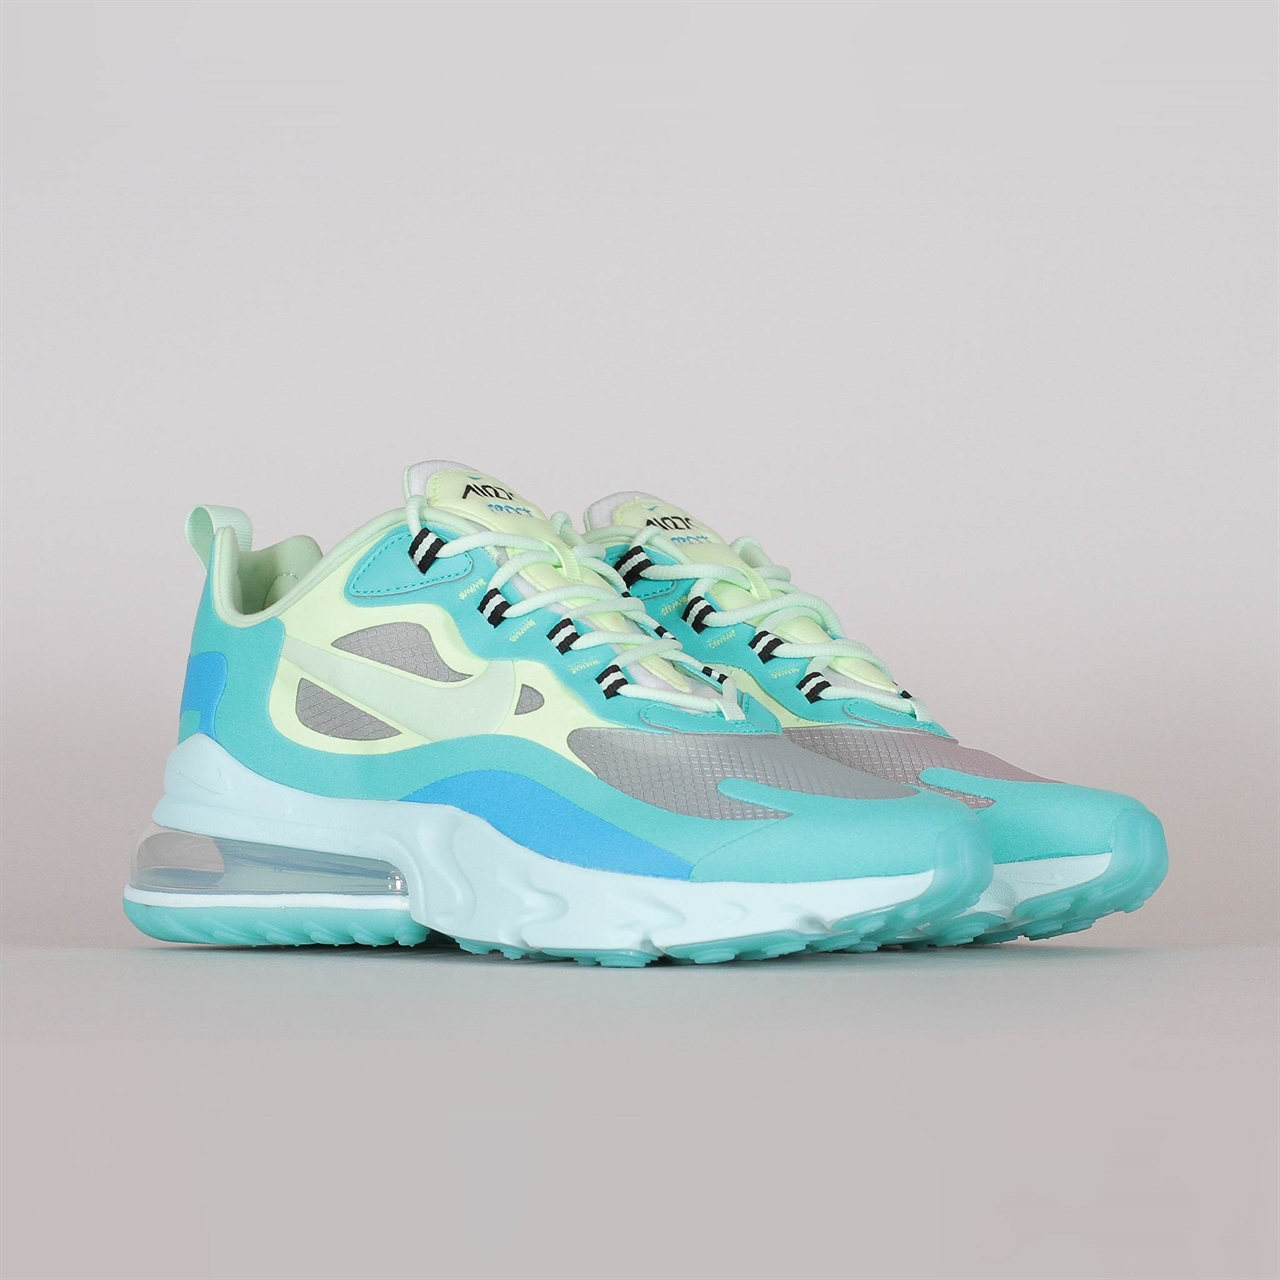 Shelta Nike Air Max 270 React Hyper Jade (AO4971 301)